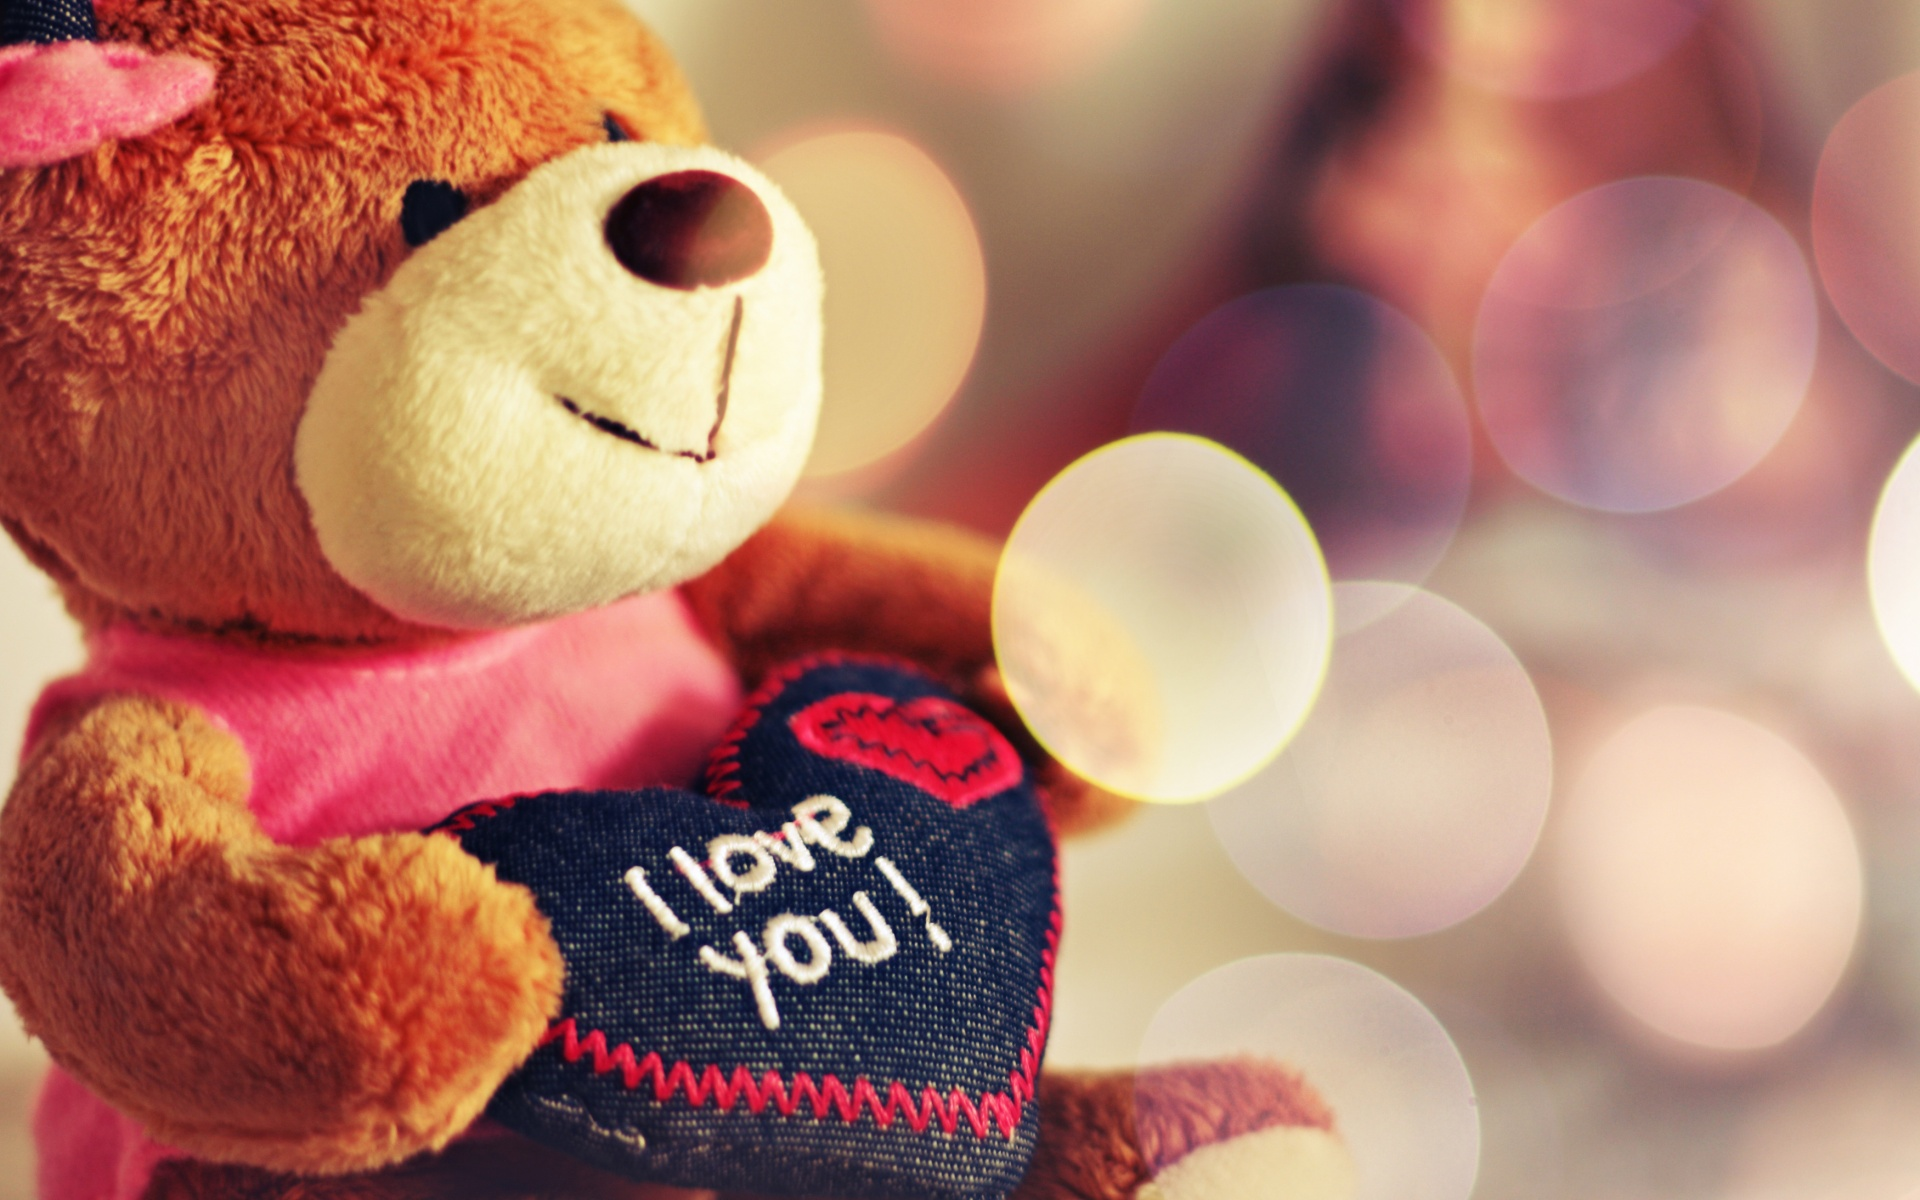 i love you teddy bear wallpapers in jpg format for free download